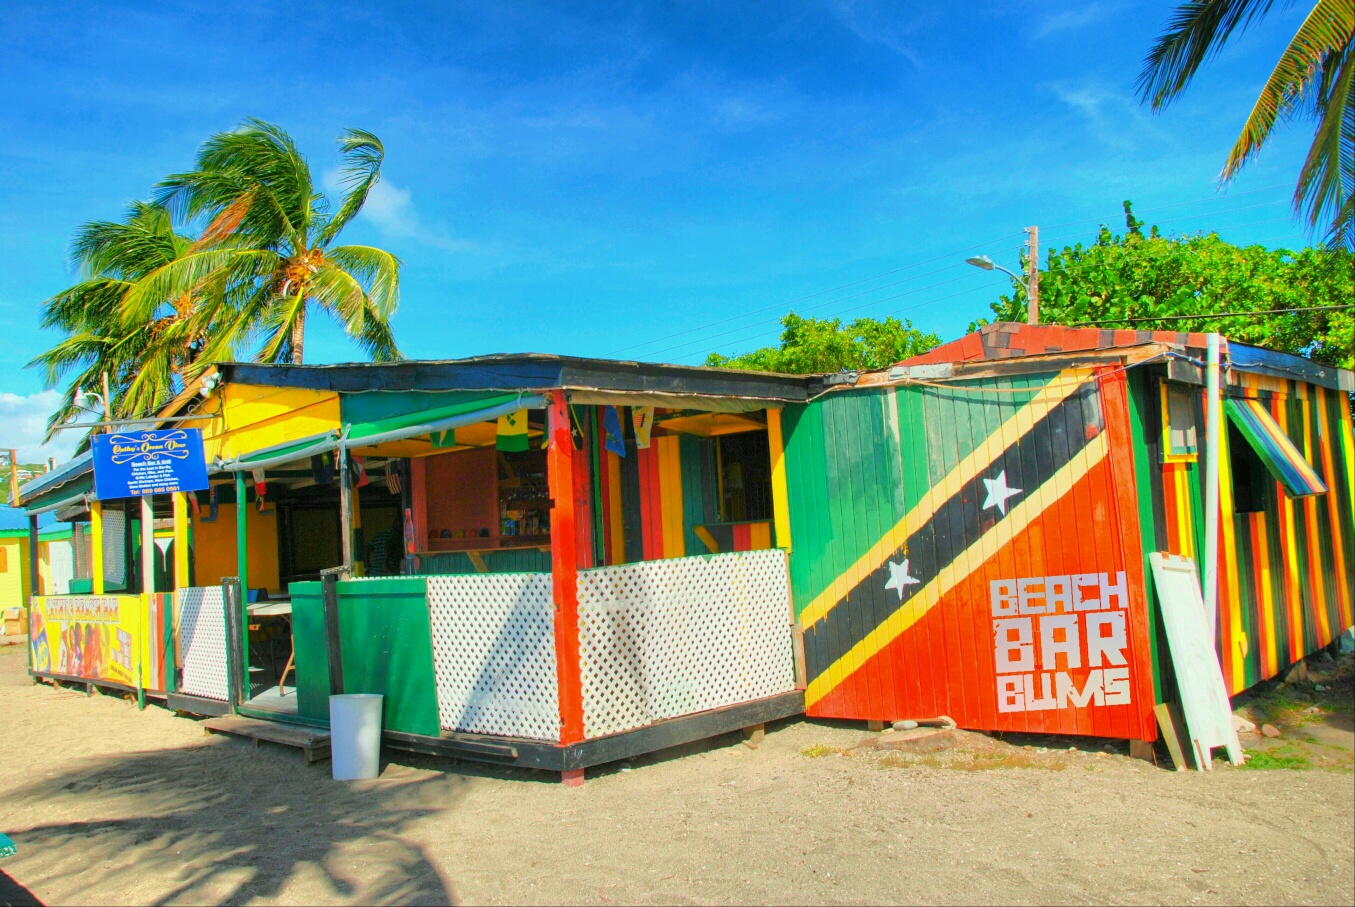 cathy's beach bar